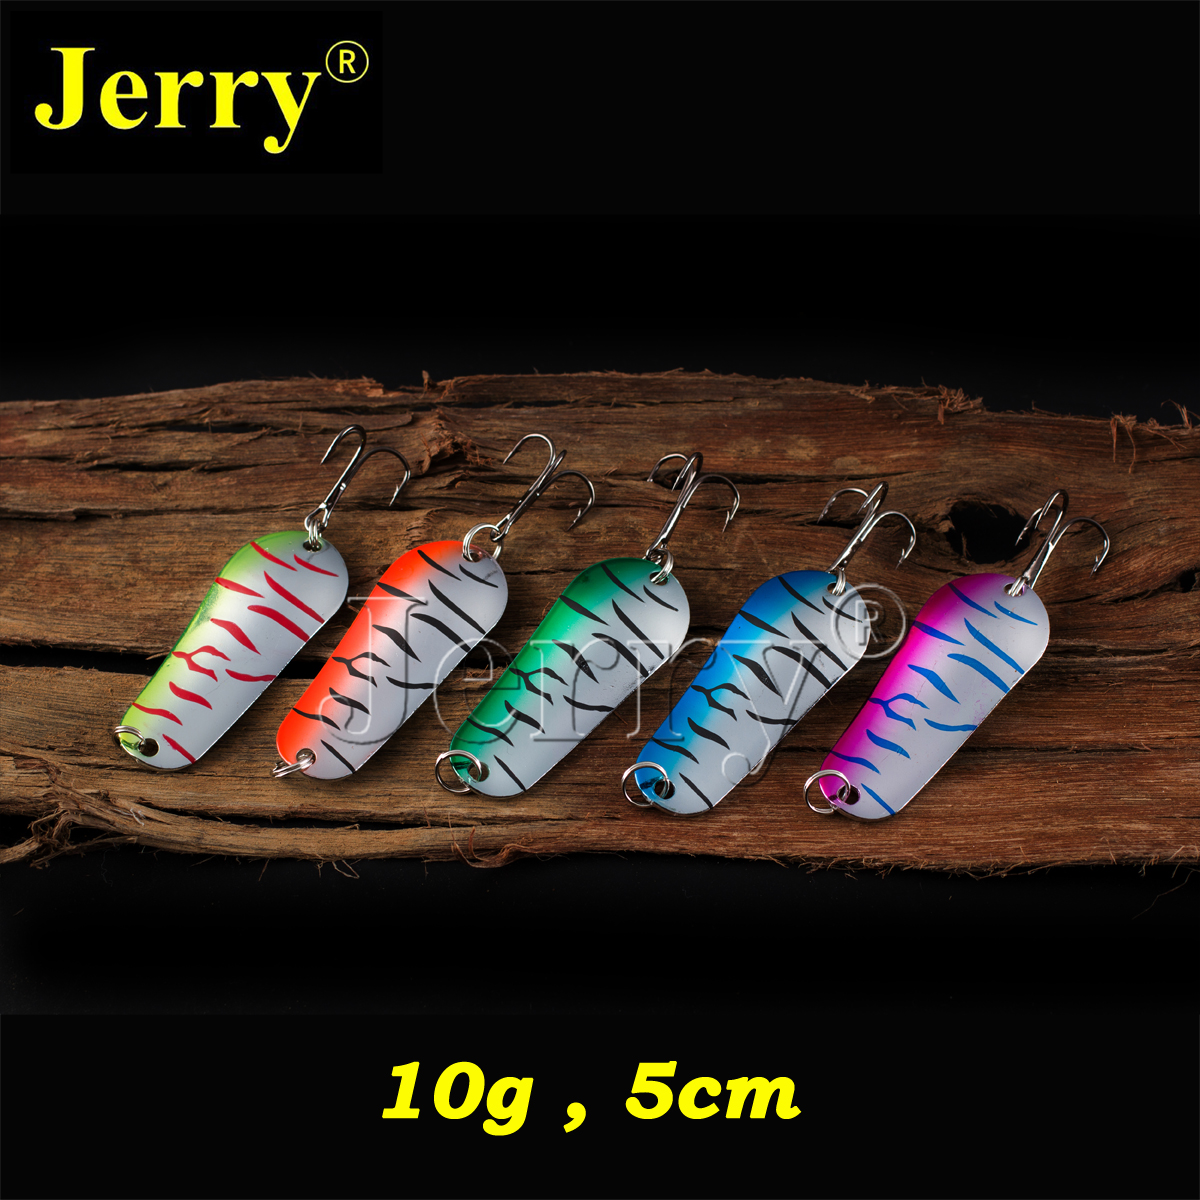 Jerry 5pcs 10g fishing lures casting metal spoon for lake trout salmon pike lure freshwater bait